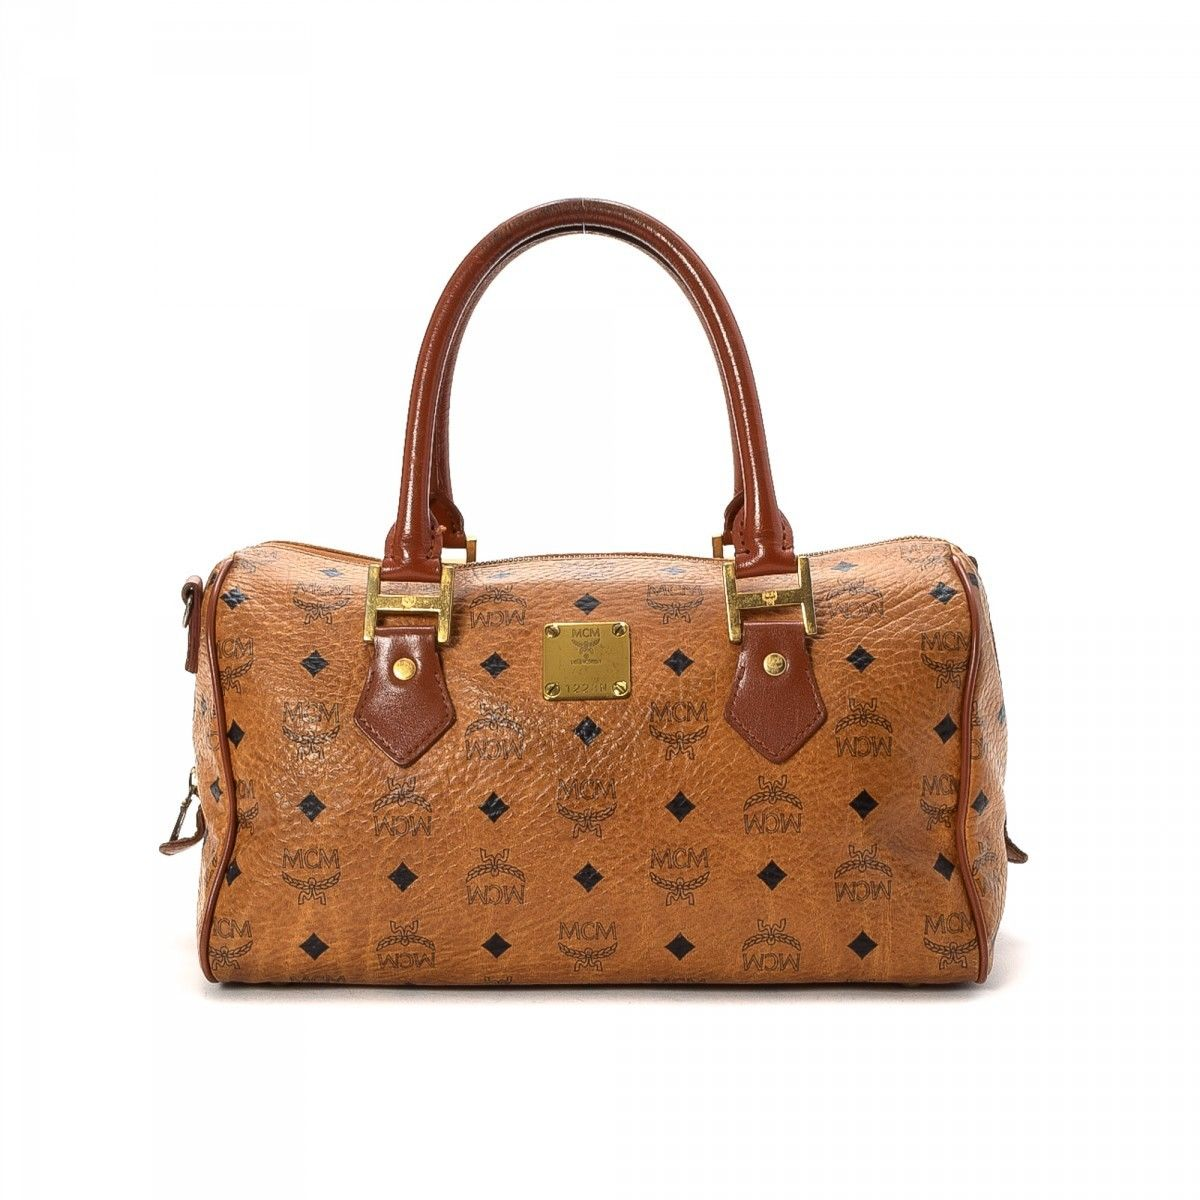 MCM Pre-owned - Leather travel bag I2zTuFhv7g